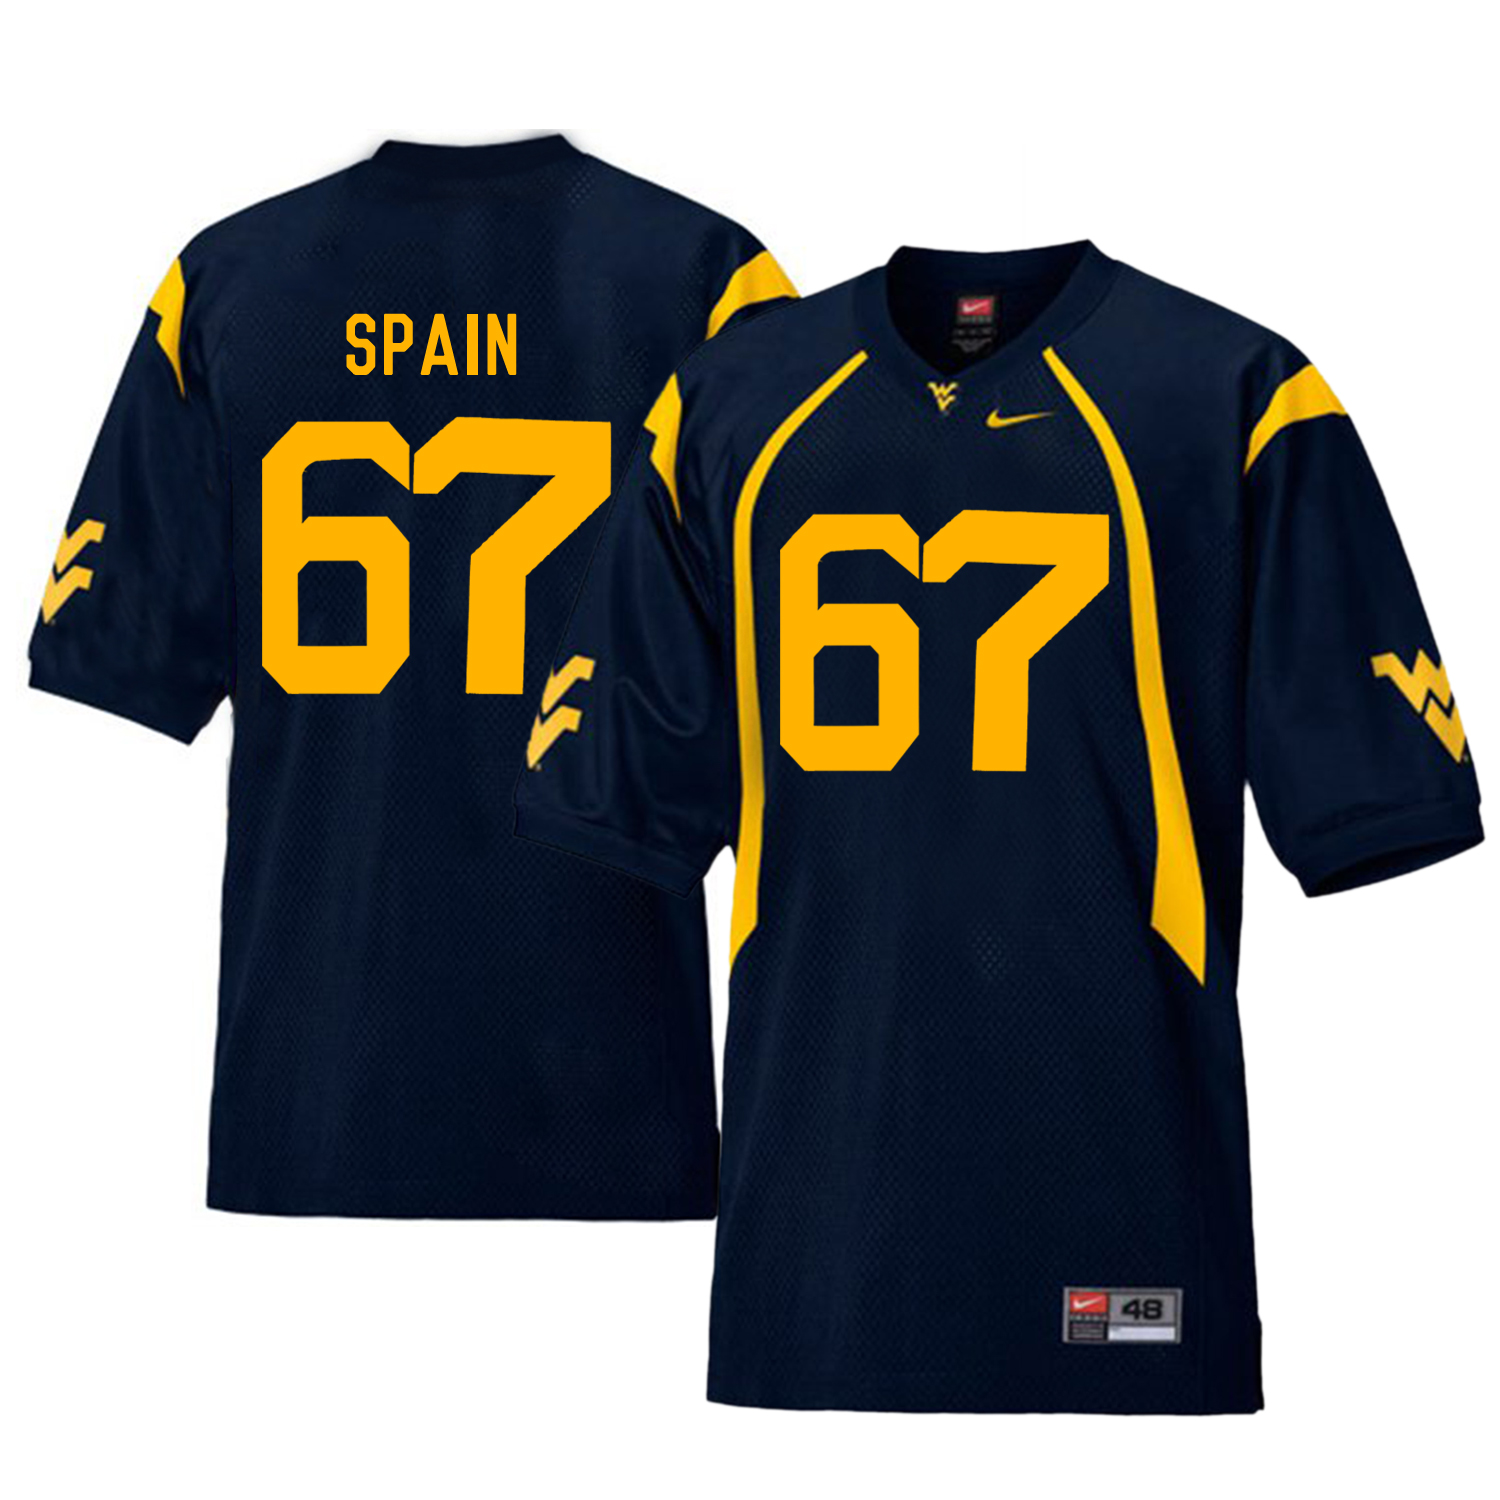 West Virginia Mountaineers 67 Quinton Spain Navy College Football Jersey